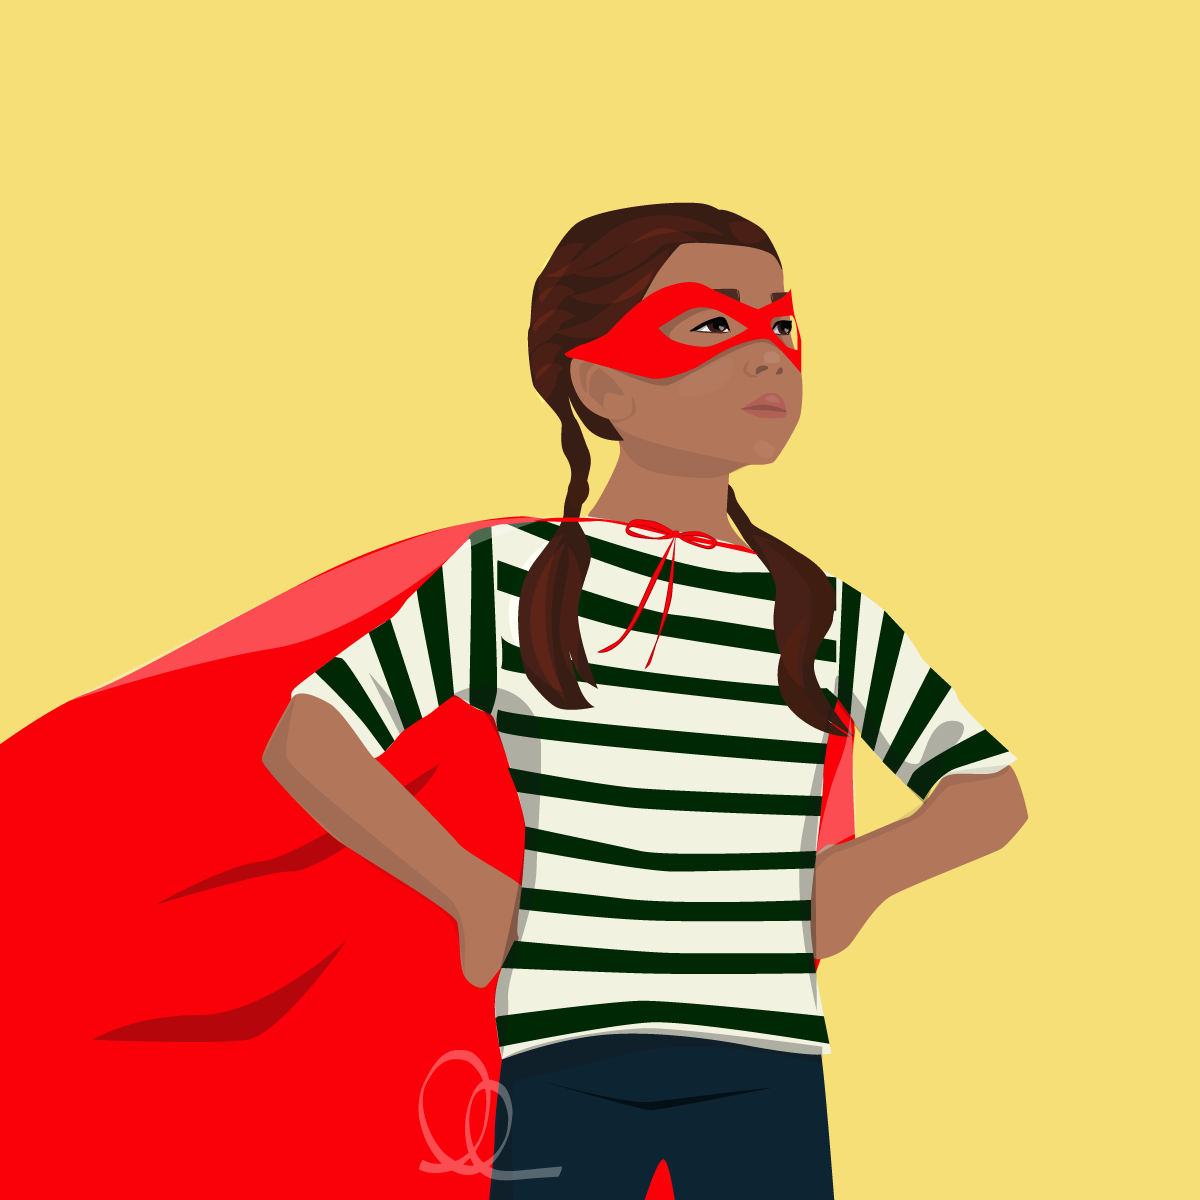 super-girl-with-cape-illustration-ll-creative.png